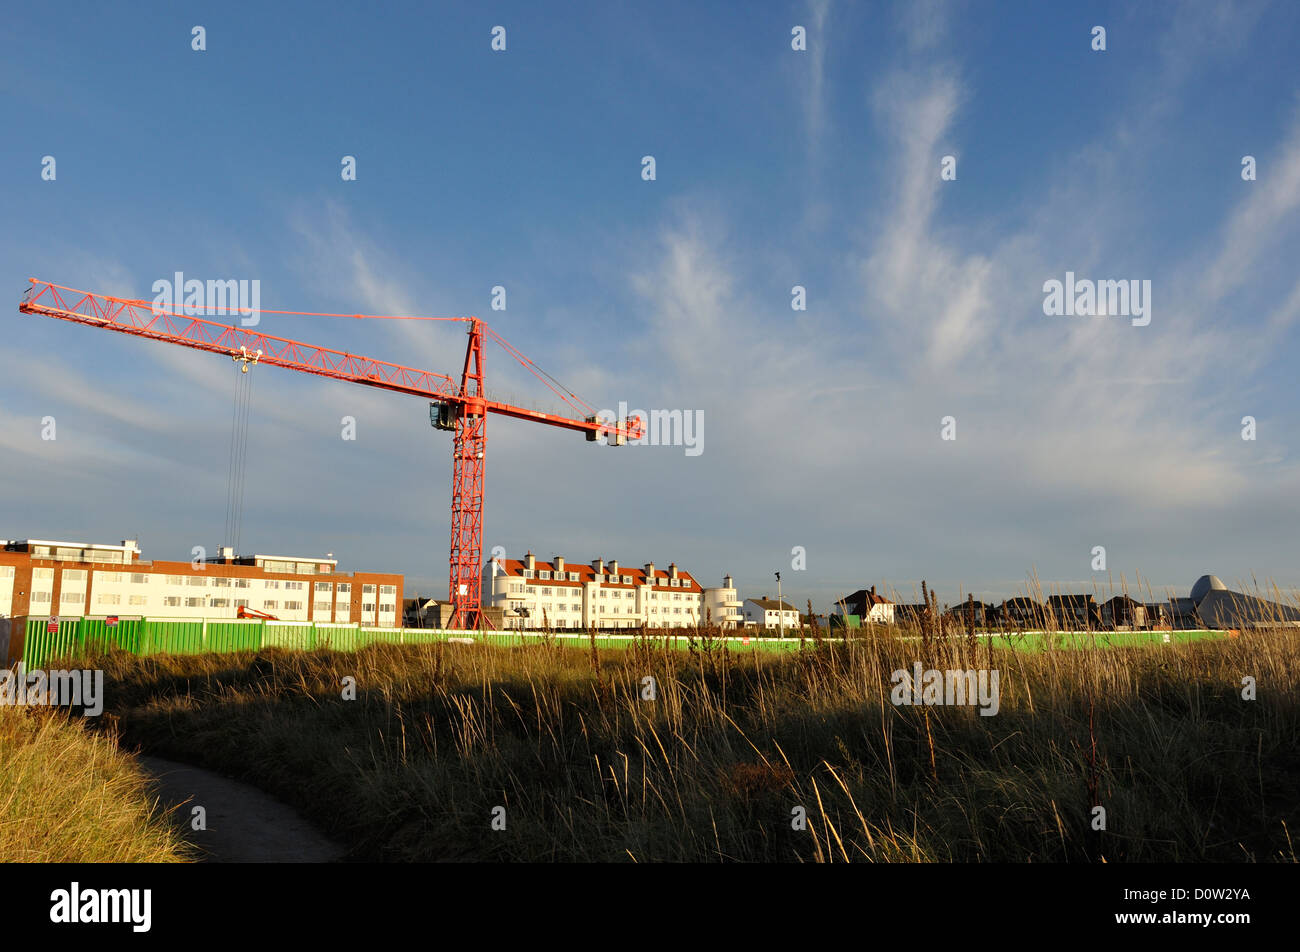 Large crane on a construction site against a dramatic blue sky with trailing clouds - Stock Image